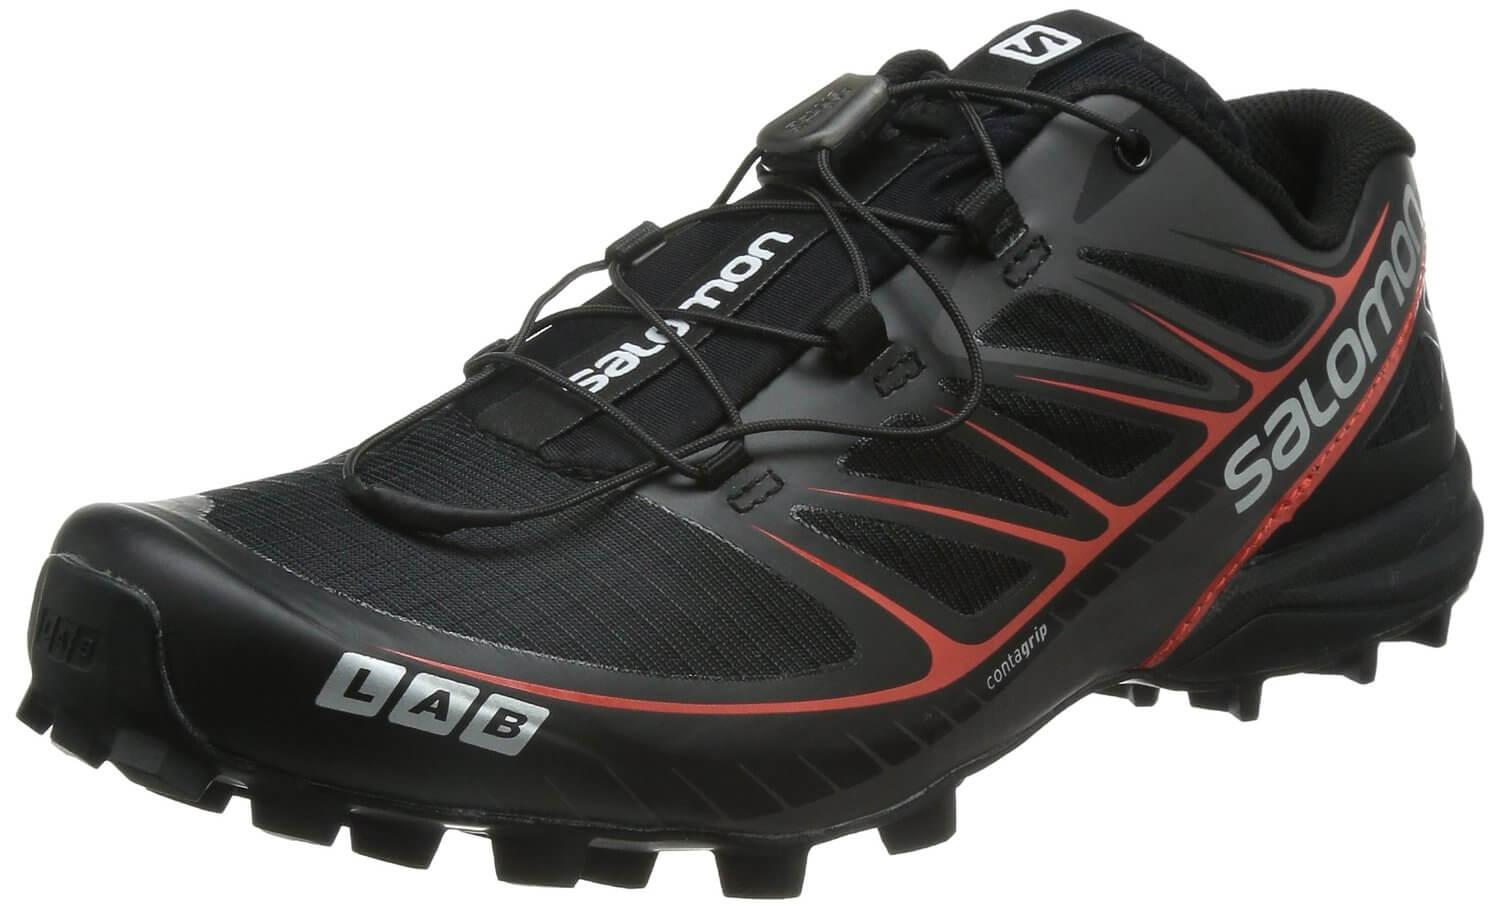 Salomon S-Lab Speed Fully Reviewed for Quality 1